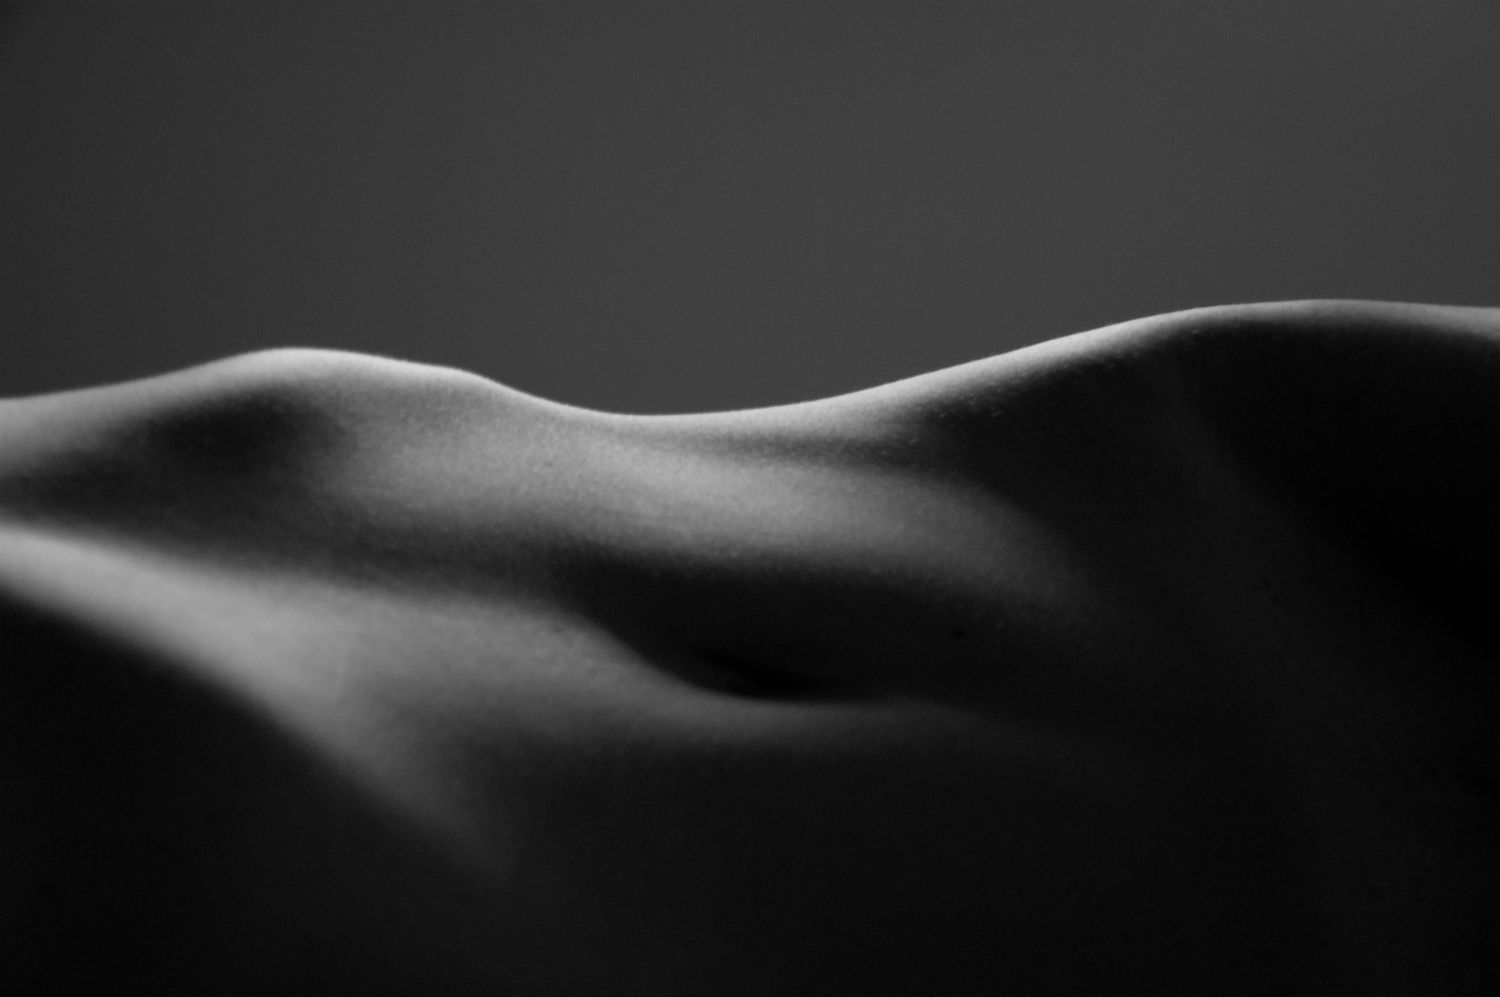 Black and white nude art